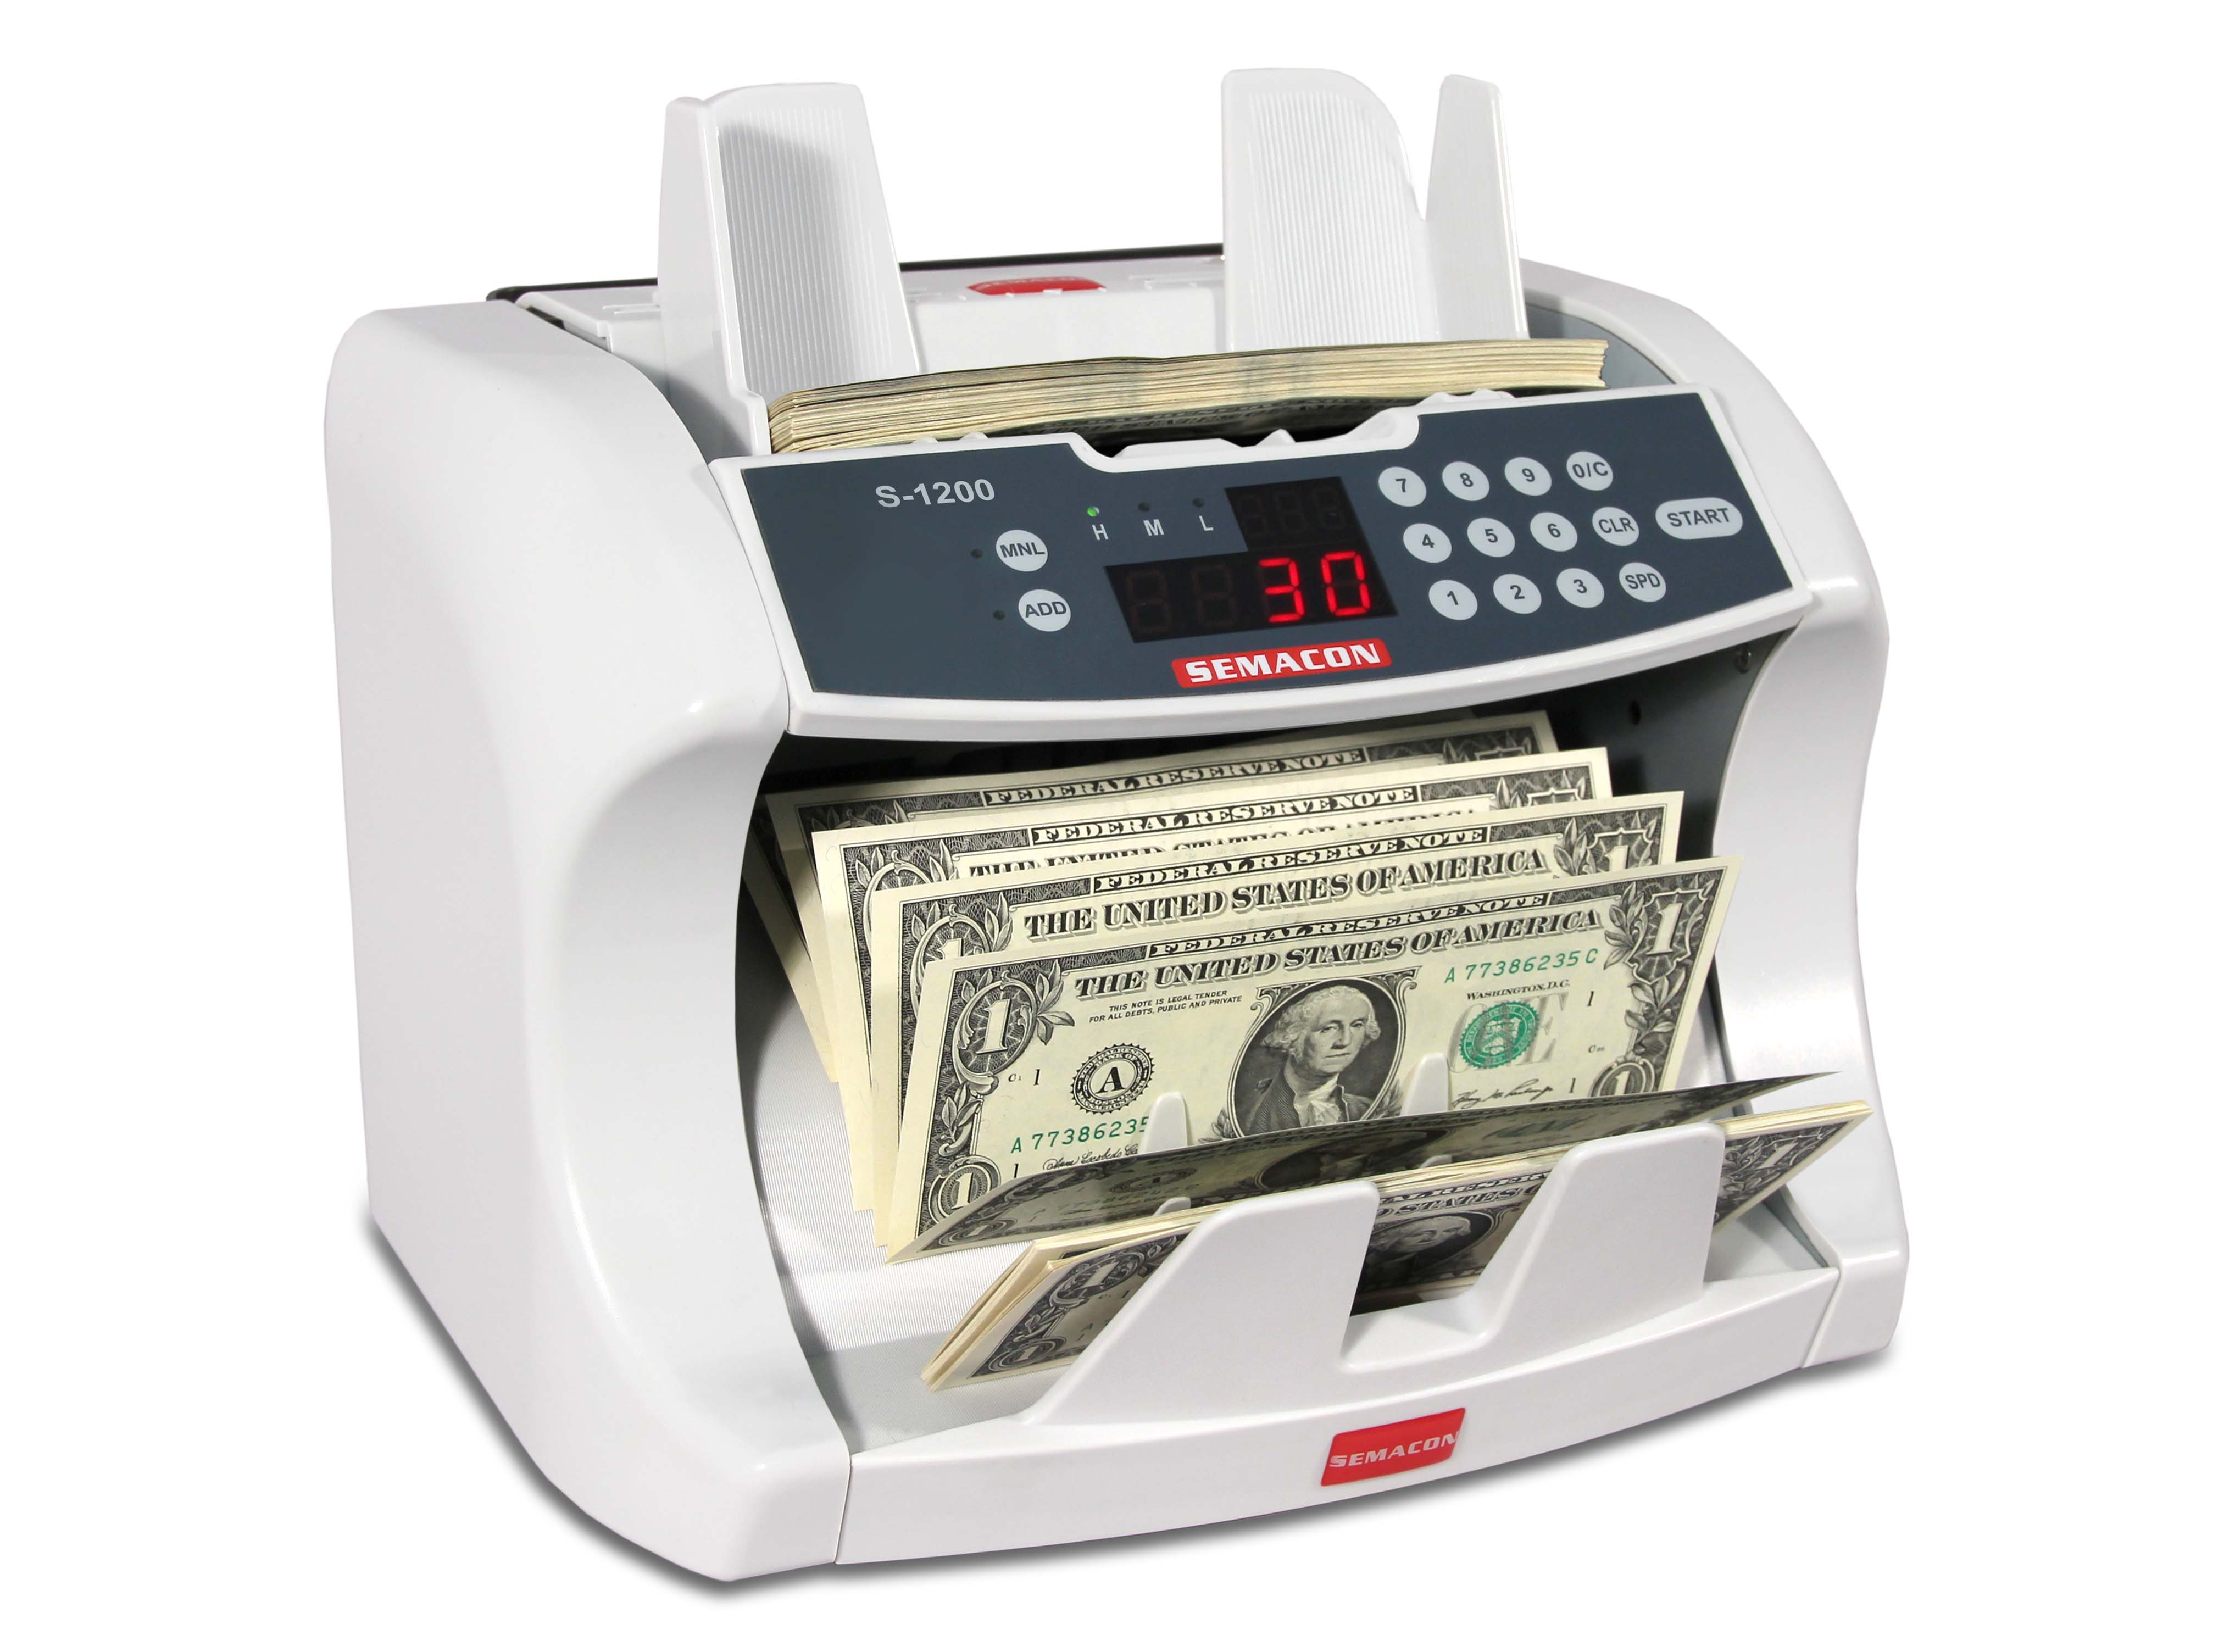 Semacon S-1200 Bank Grade Currency Counter